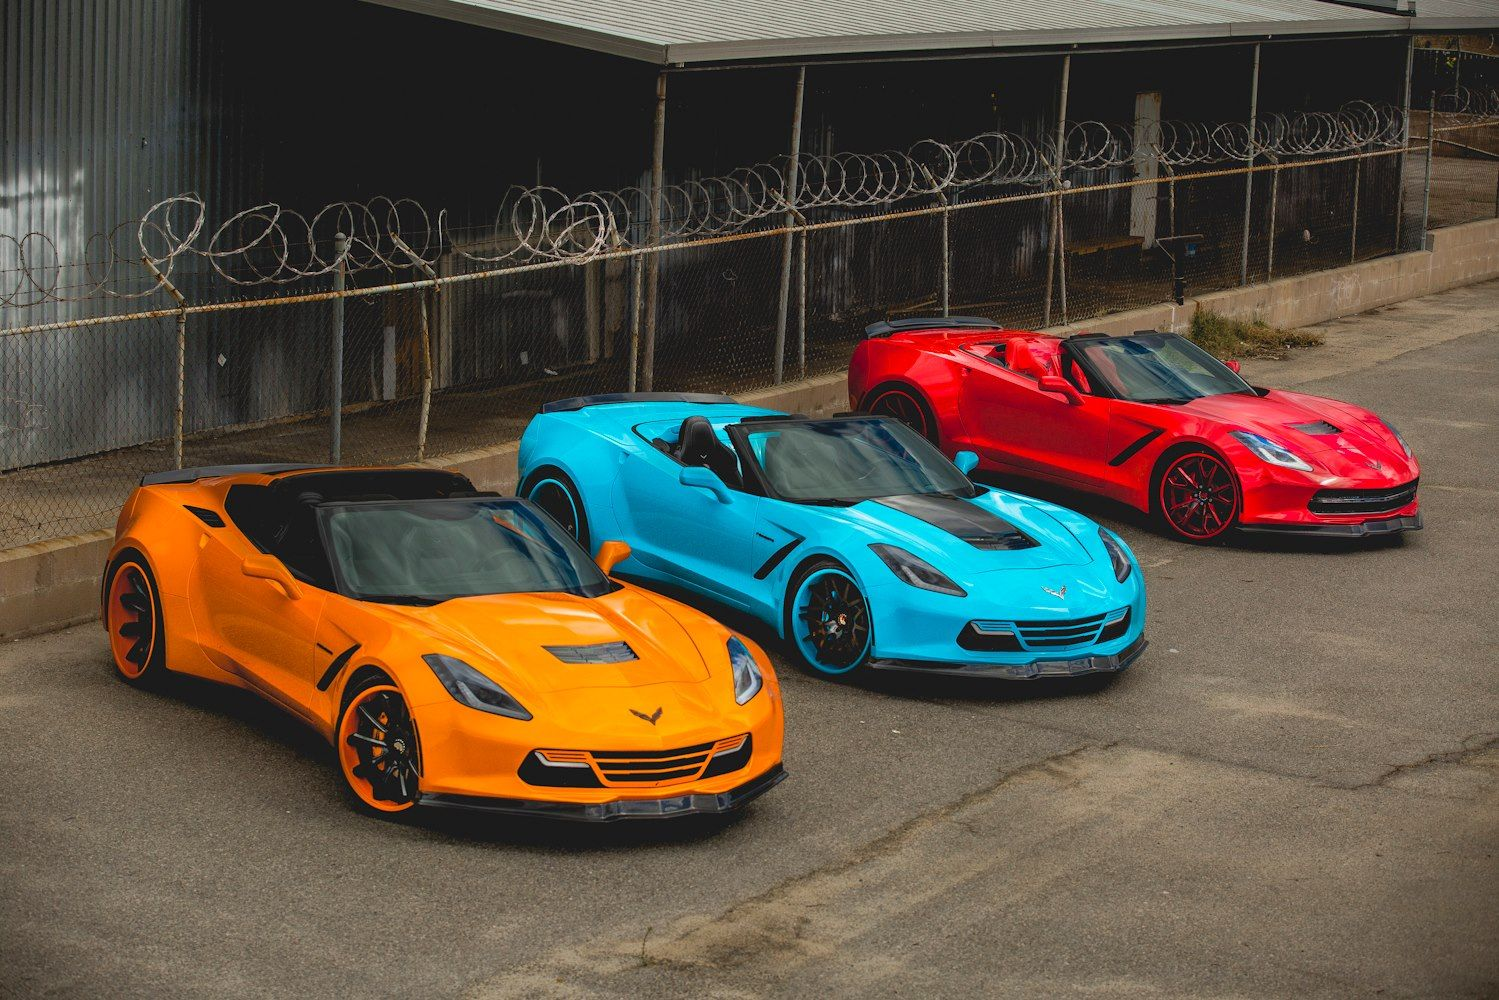 Corvette c7 chevy corvette : These Candy-Coated Wide-Body C7 Corvettes Will Leave You Drooling ...